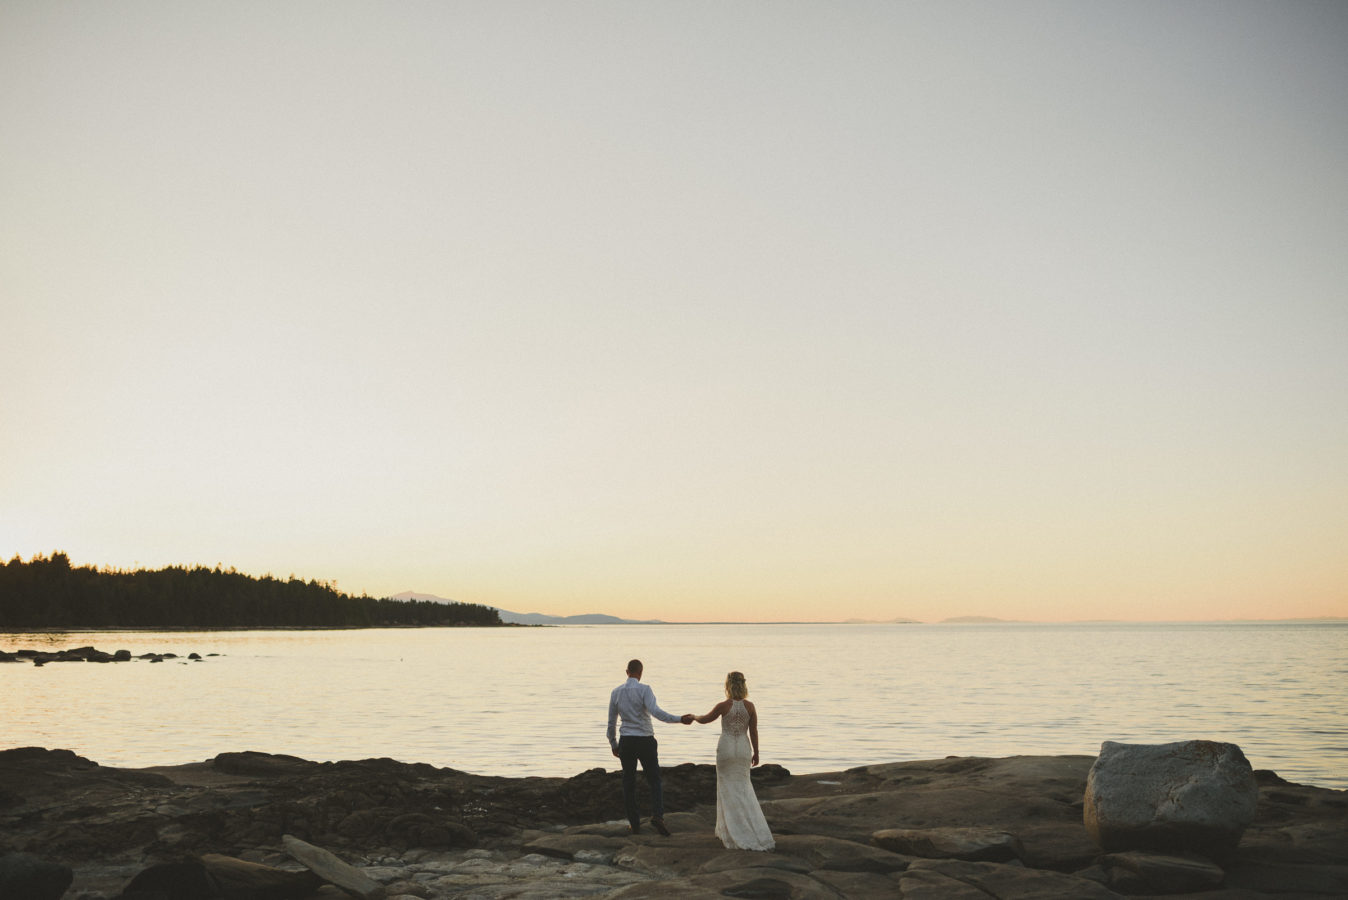 bride and groom holding hands and walking towards the ocean on a rocky shore at sunset